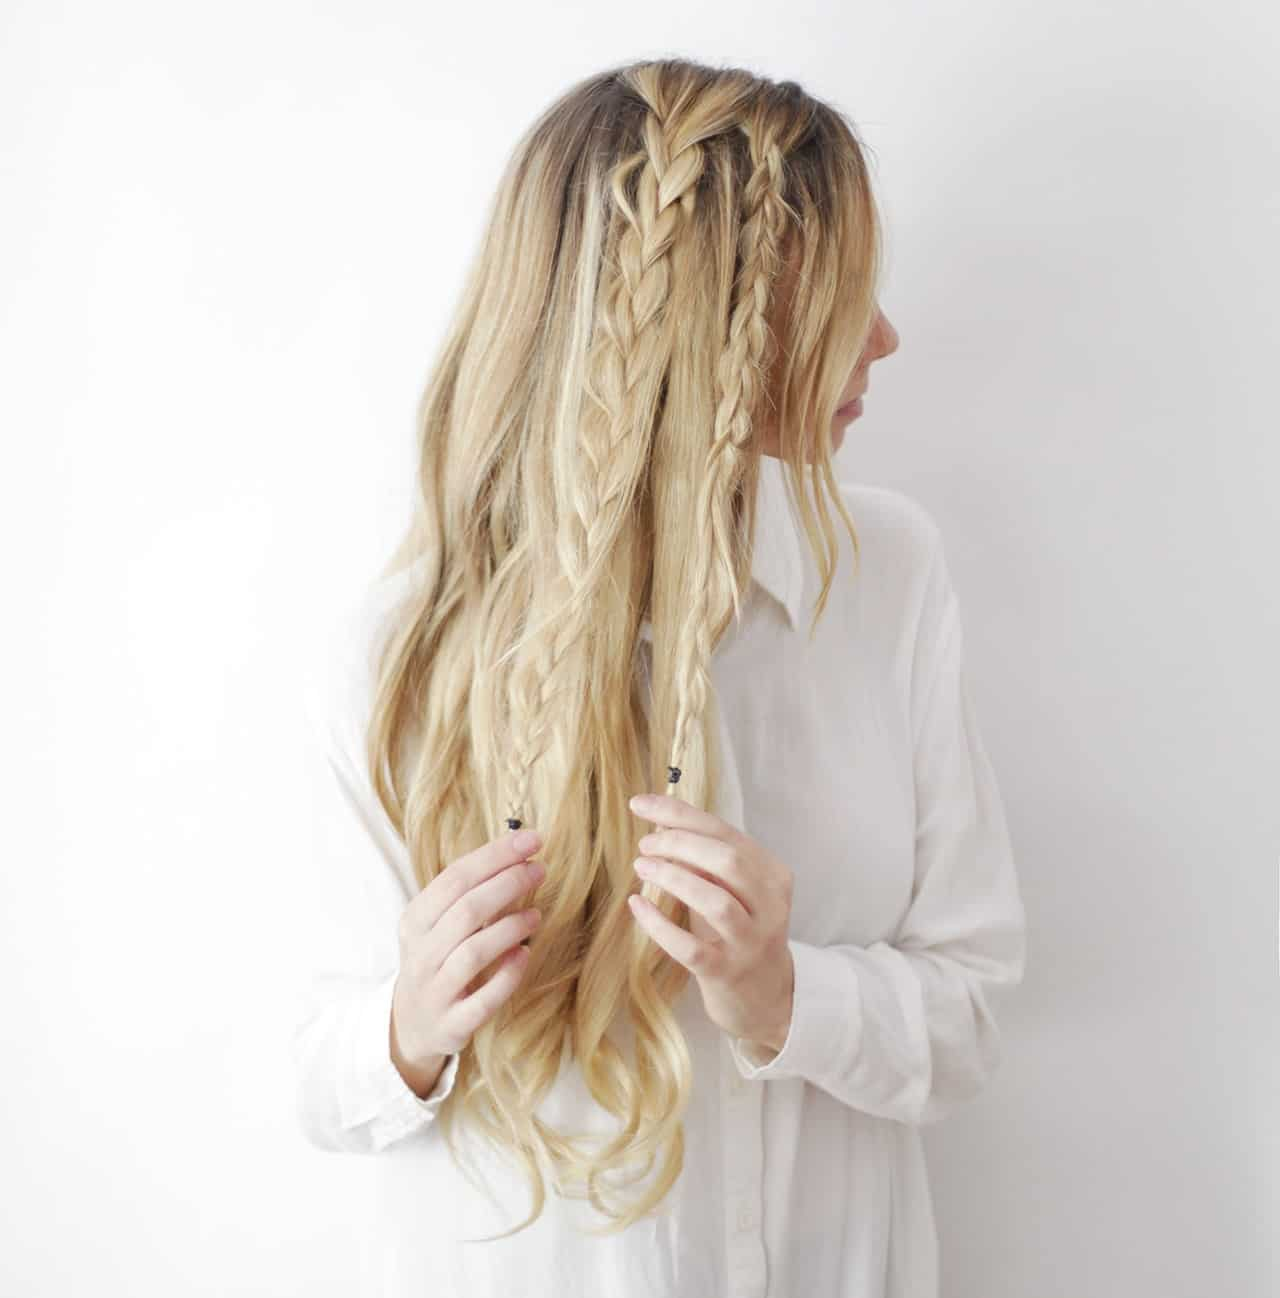 Boho braids hair tutorial